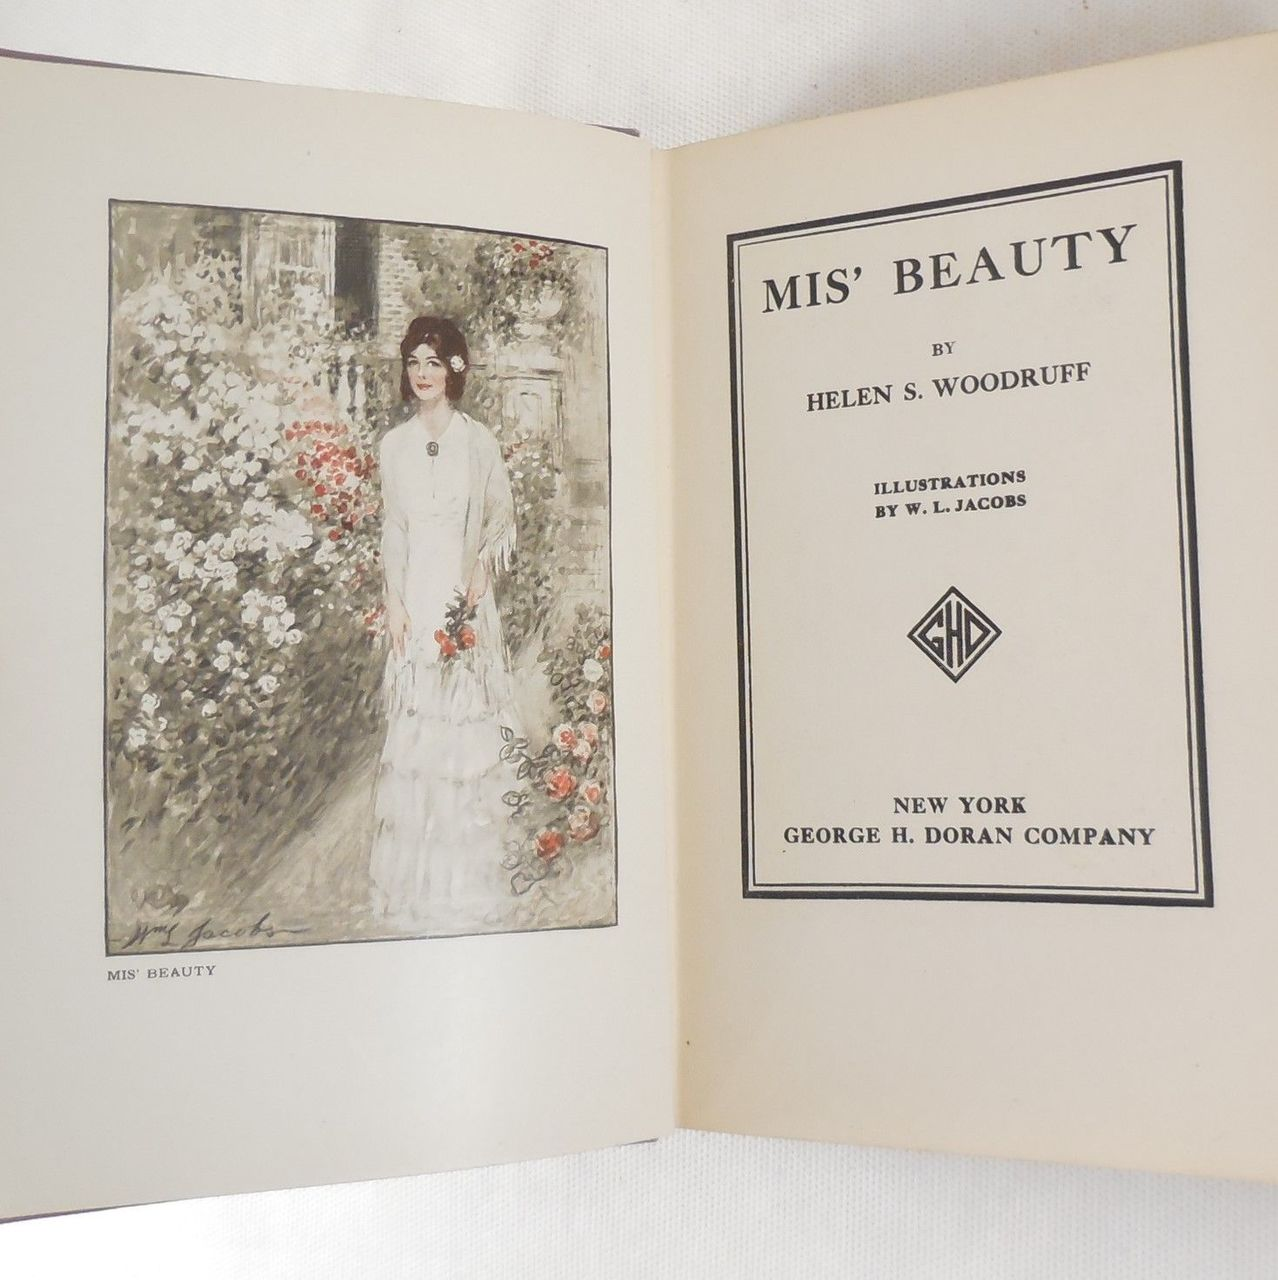 MIS' BEAUTY, by Helen S. Woodruff - 1911 [Signed]